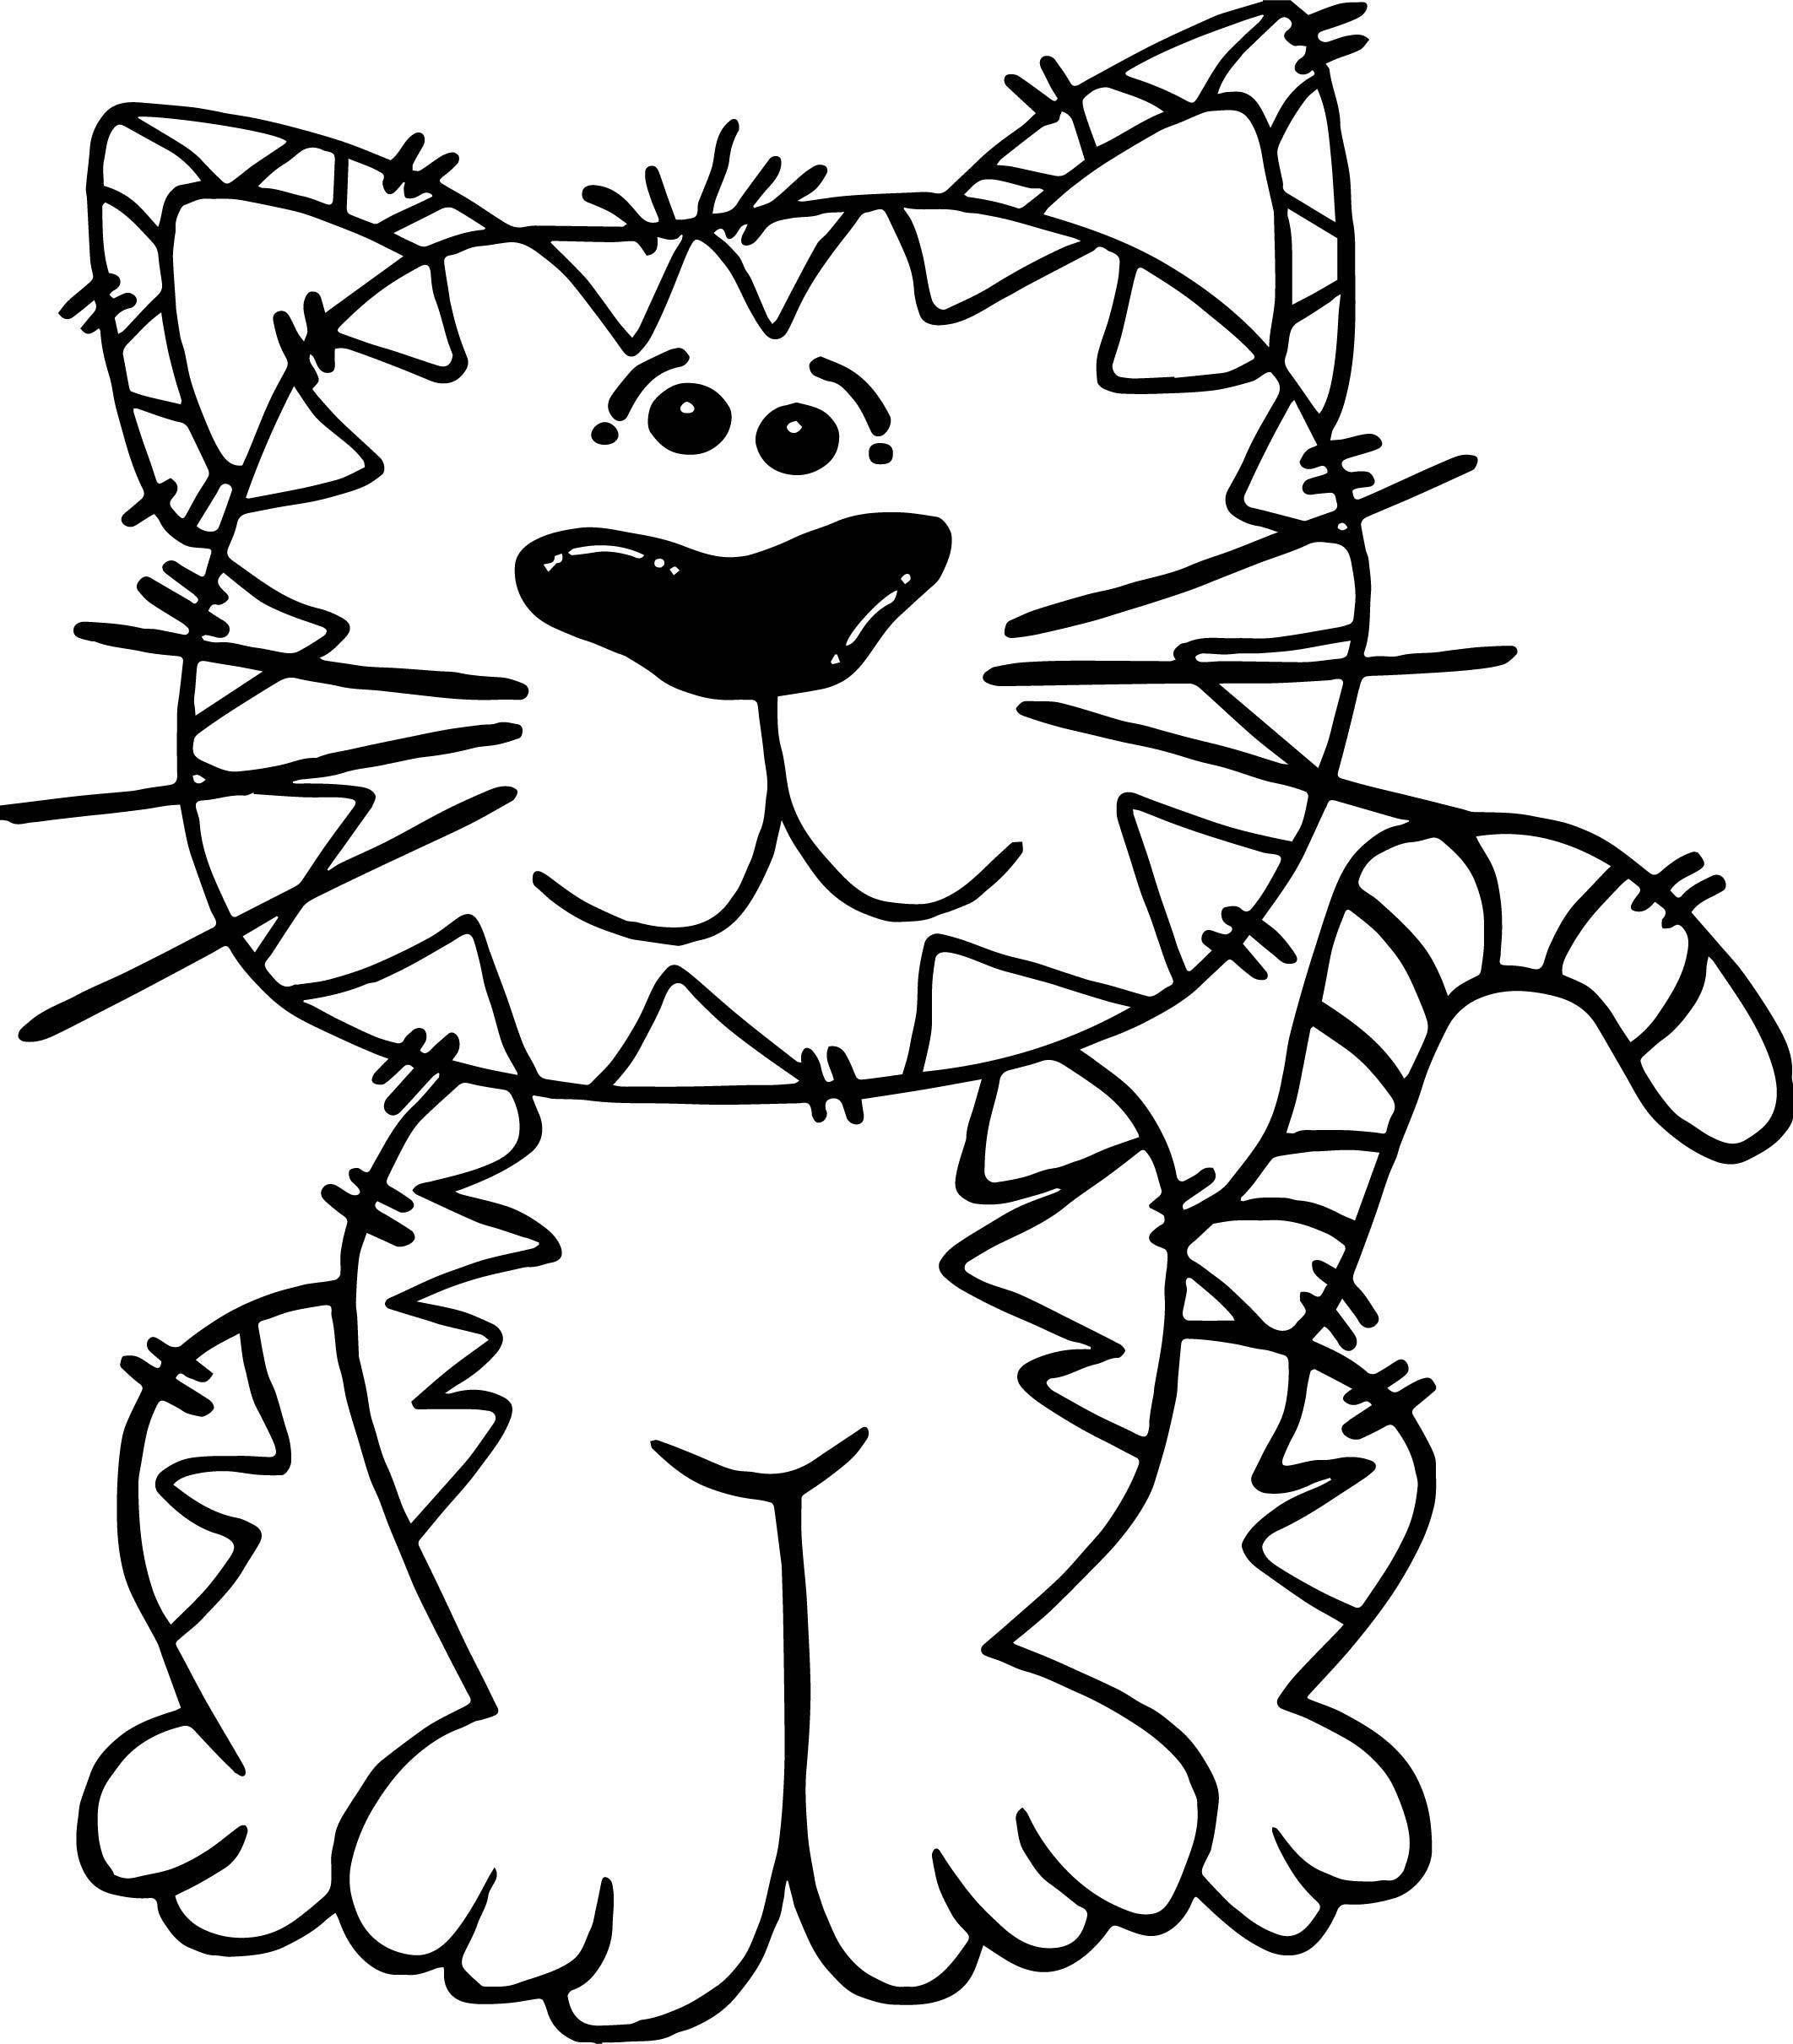 Why Cat Coloring Page